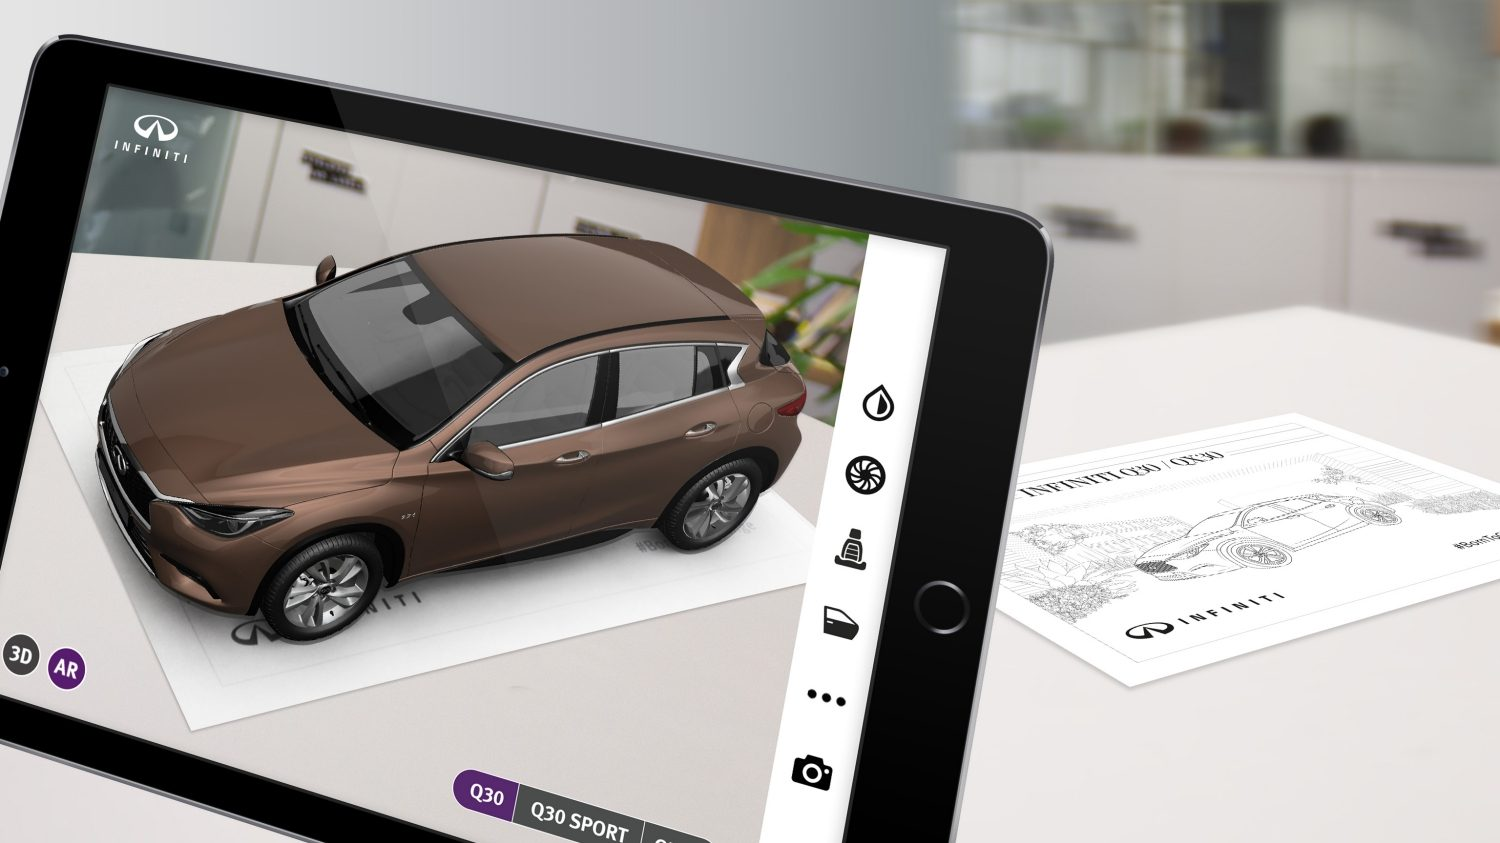 The Augmented Reality App